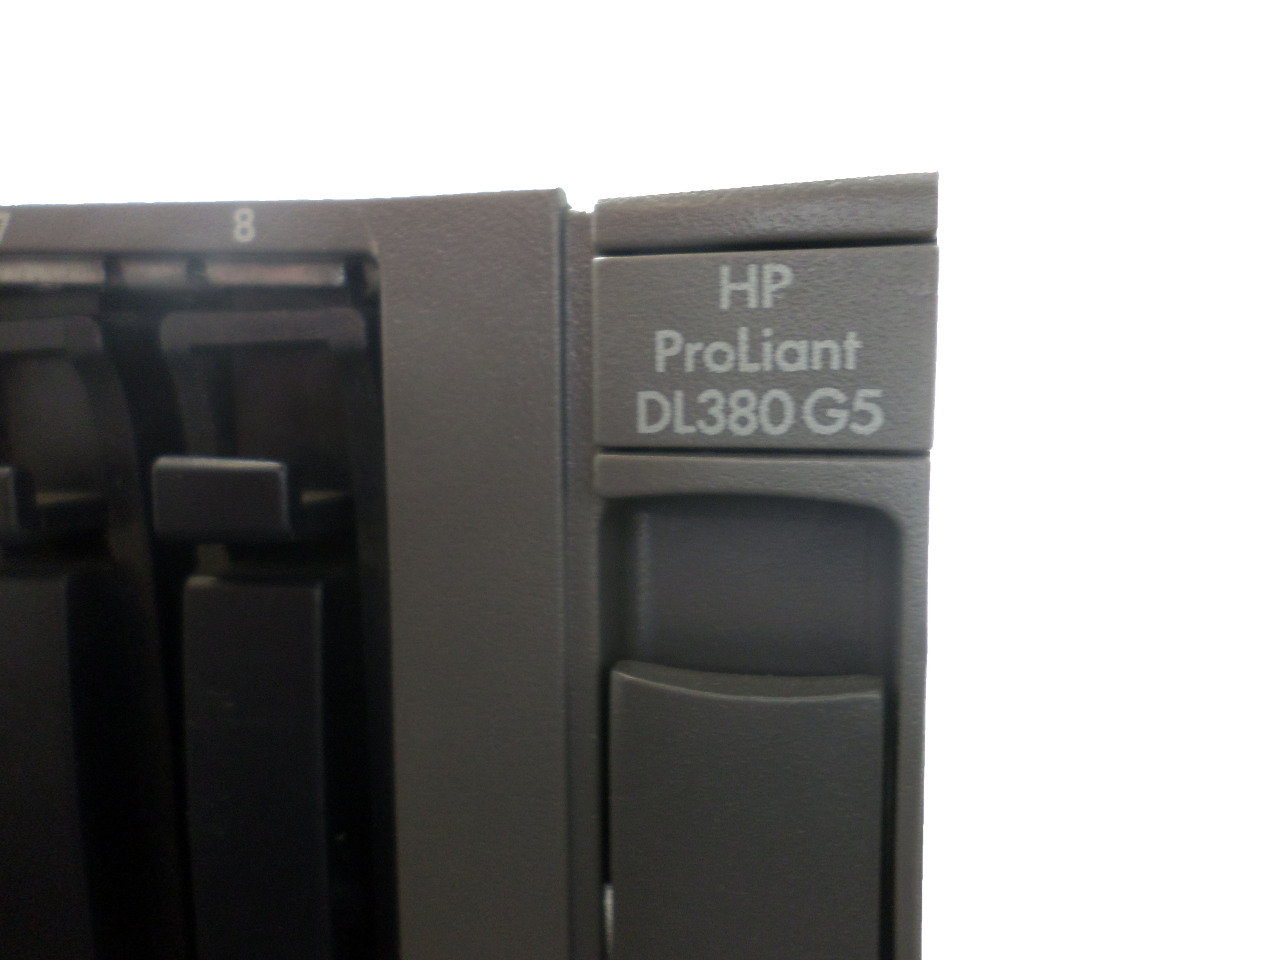 hp proliant dl380 g5 8 gb ram 2 exon processors 2 fiber cards no hard drive ebay. Black Bedroom Furniture Sets. Home Design Ideas